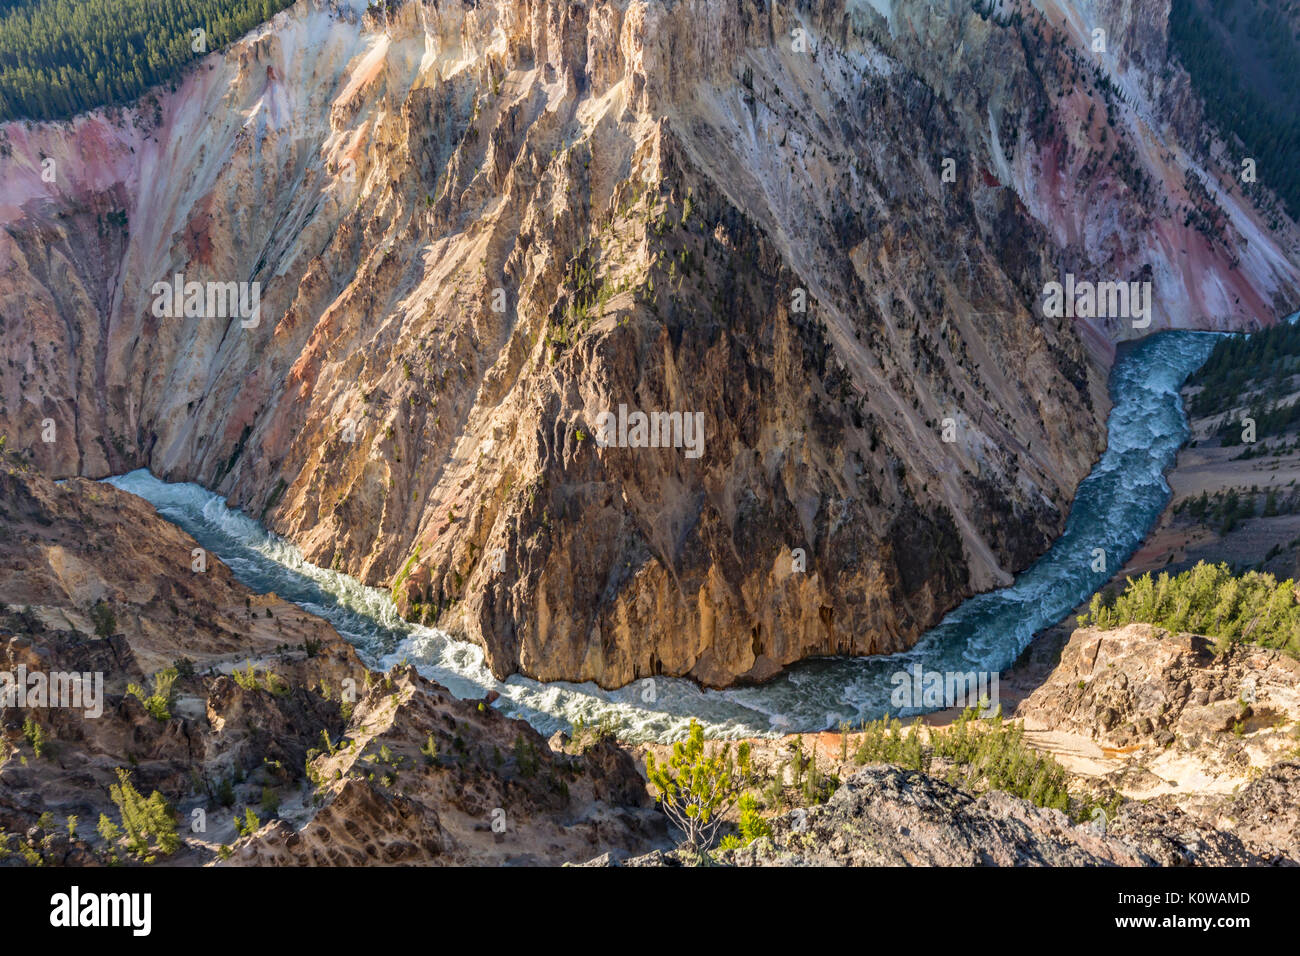 A wide, sweeping turn of the raging Yellowstone River below Inspiration Point in Yellowstone National Park, Wyoming - Stock Image